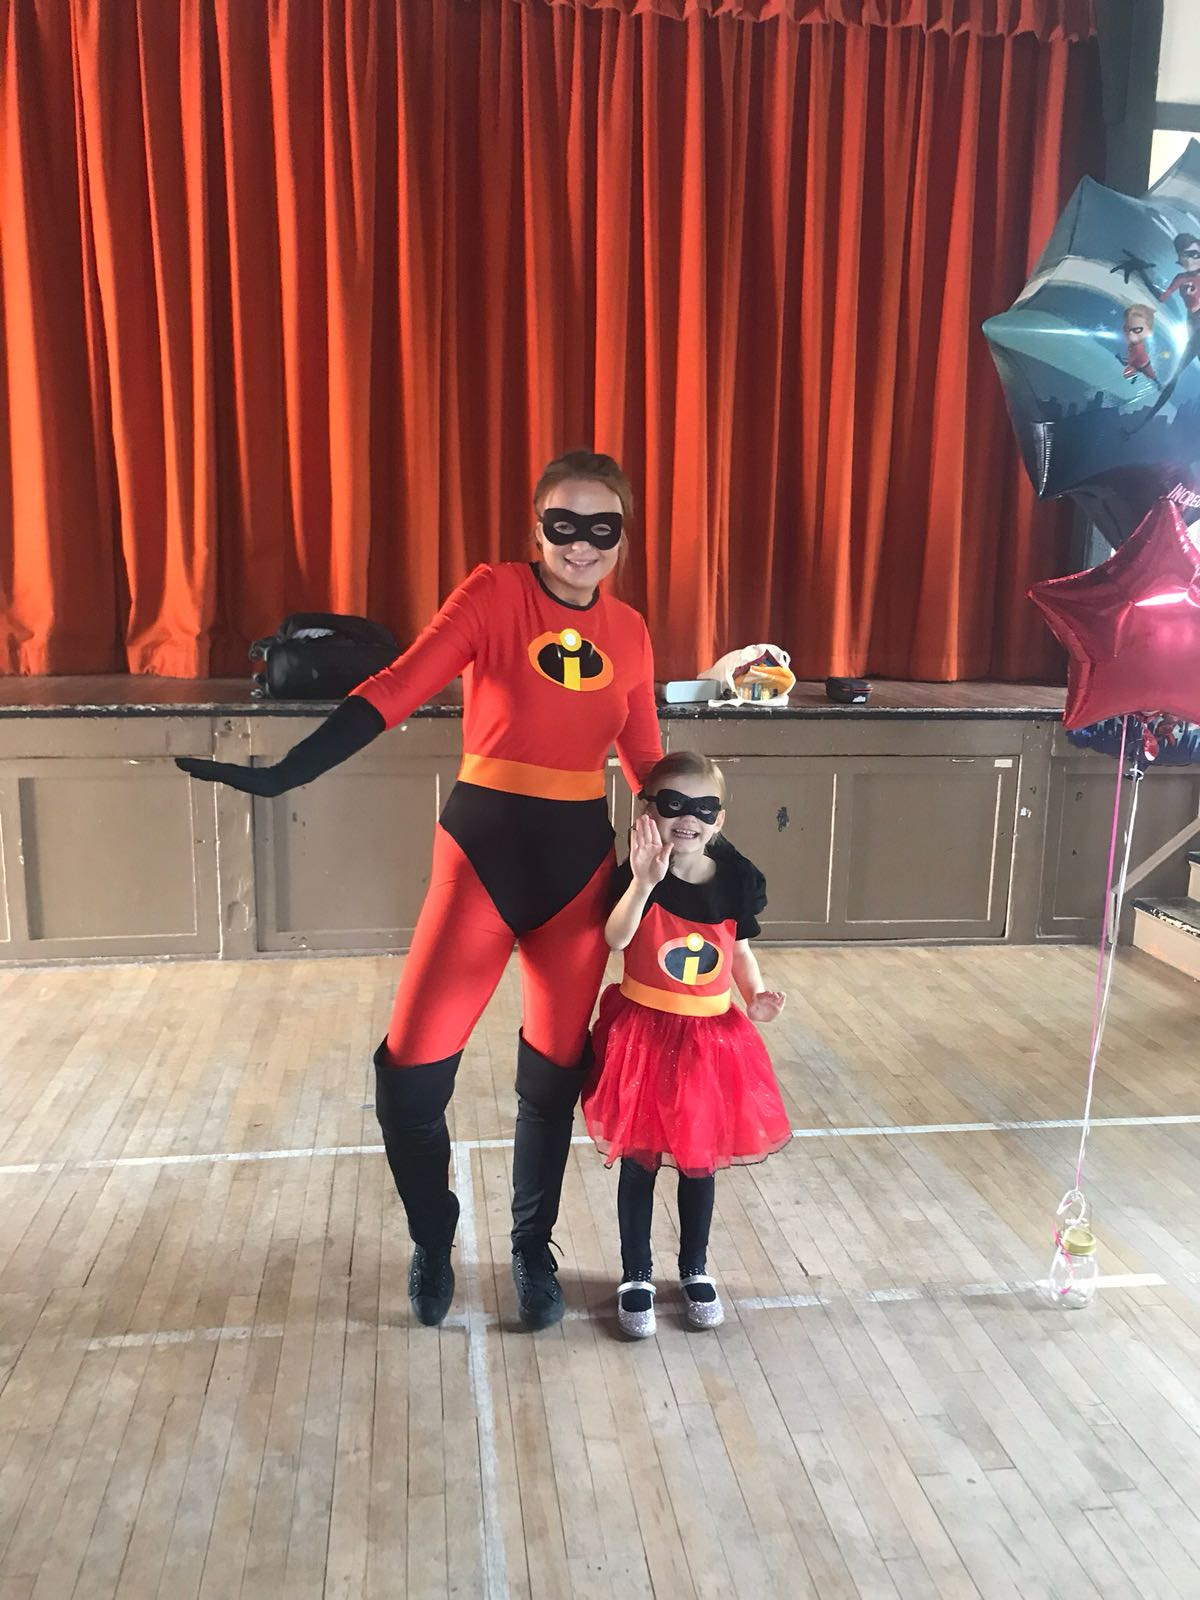 The incredibles superhero party